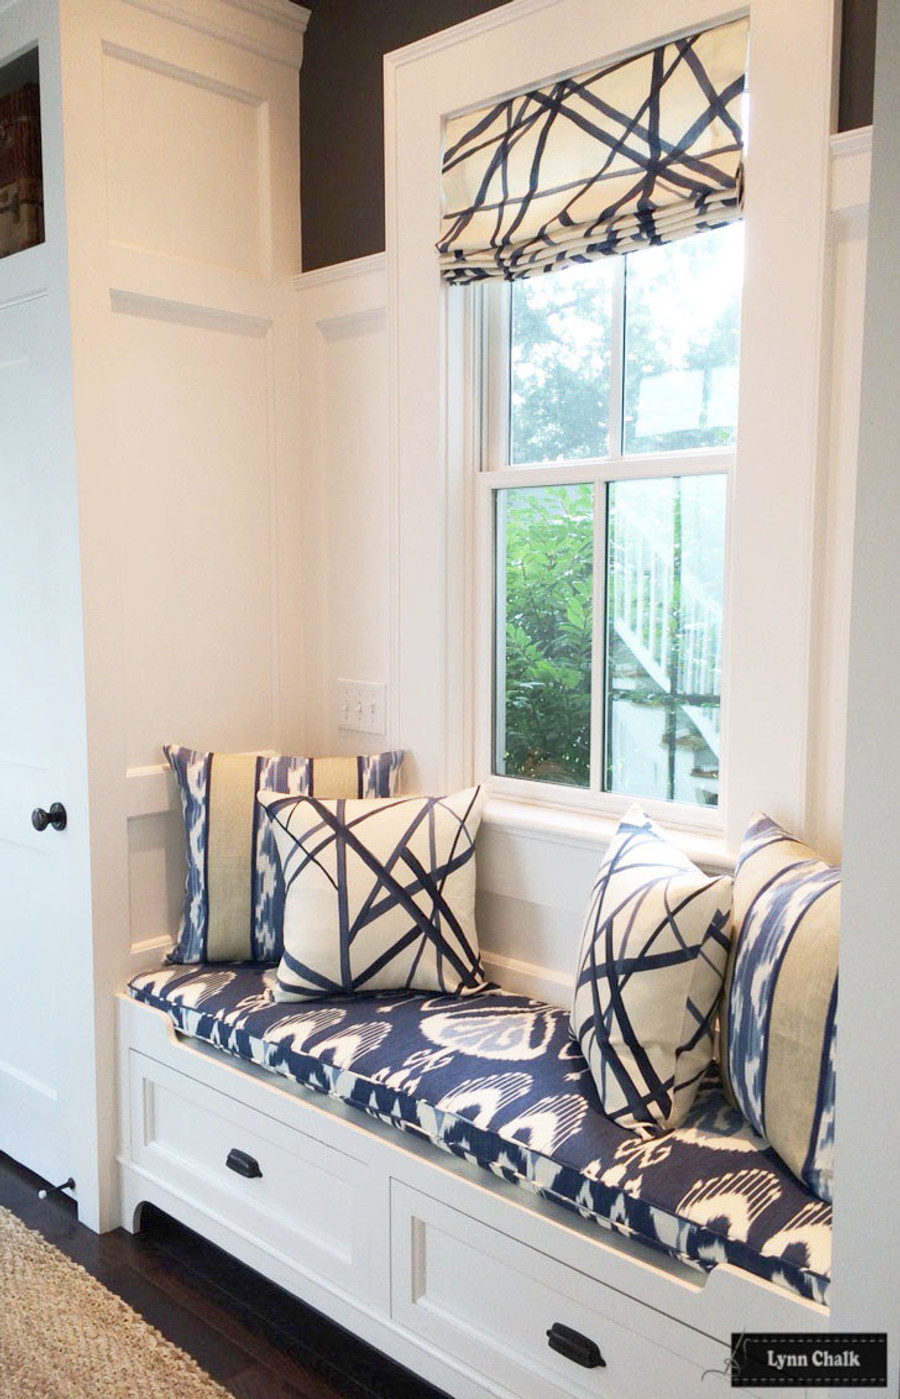 Kelly Wearstler for Lee Jofa Channels Custom Drapes - Shown in Periwinkle/Oat (Comes in 4 Colors)